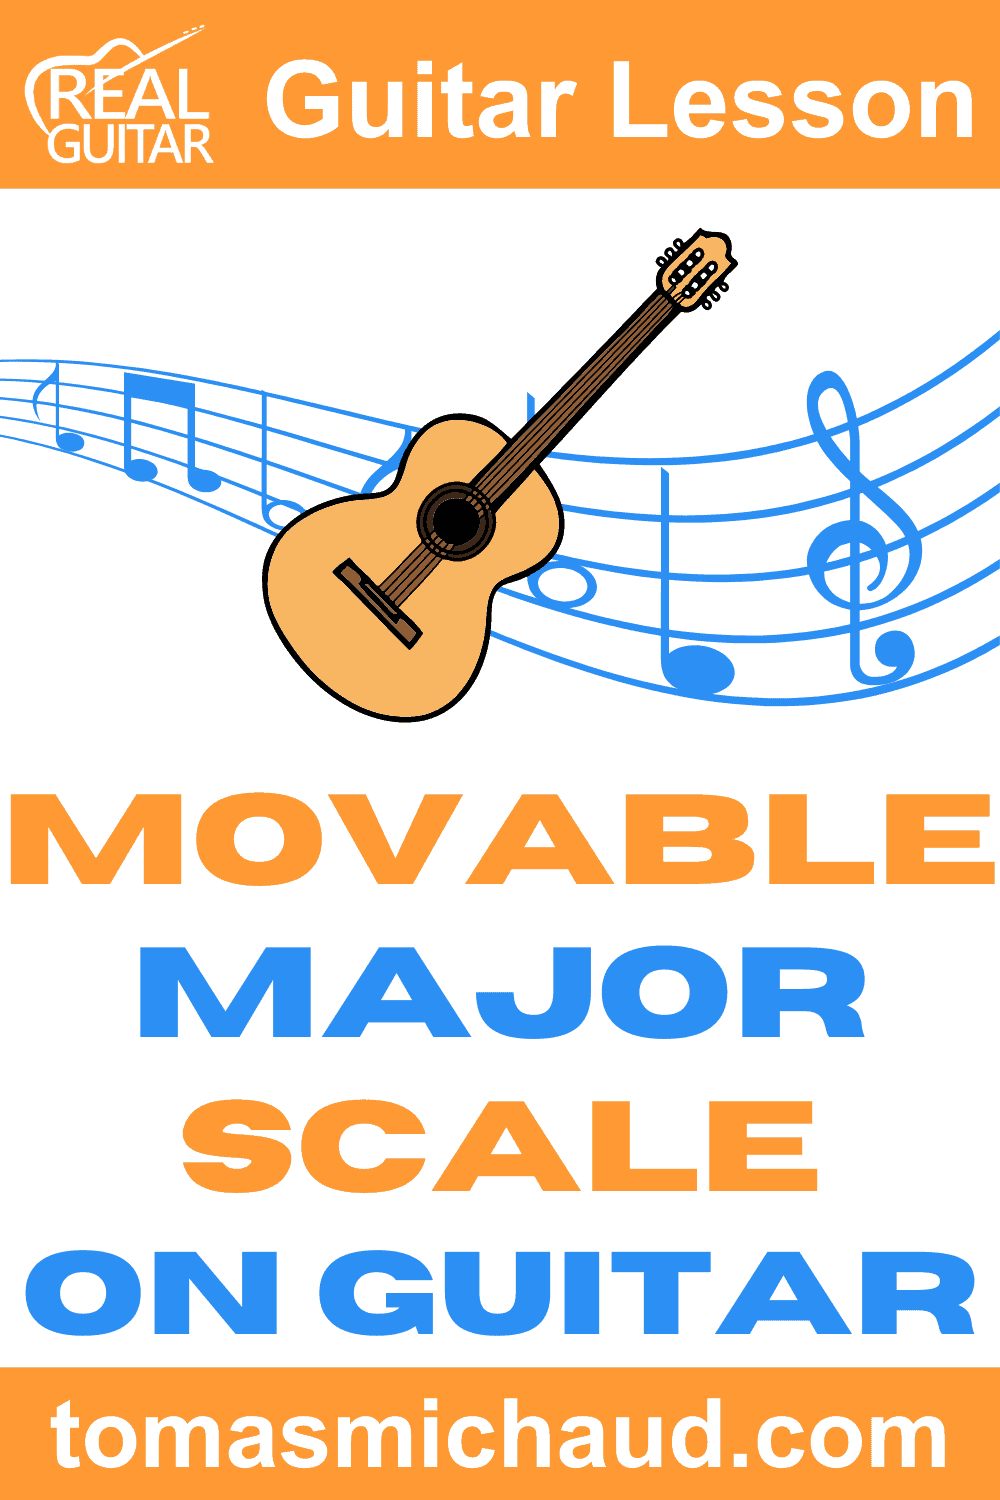 Movable Major Scale on Guitar